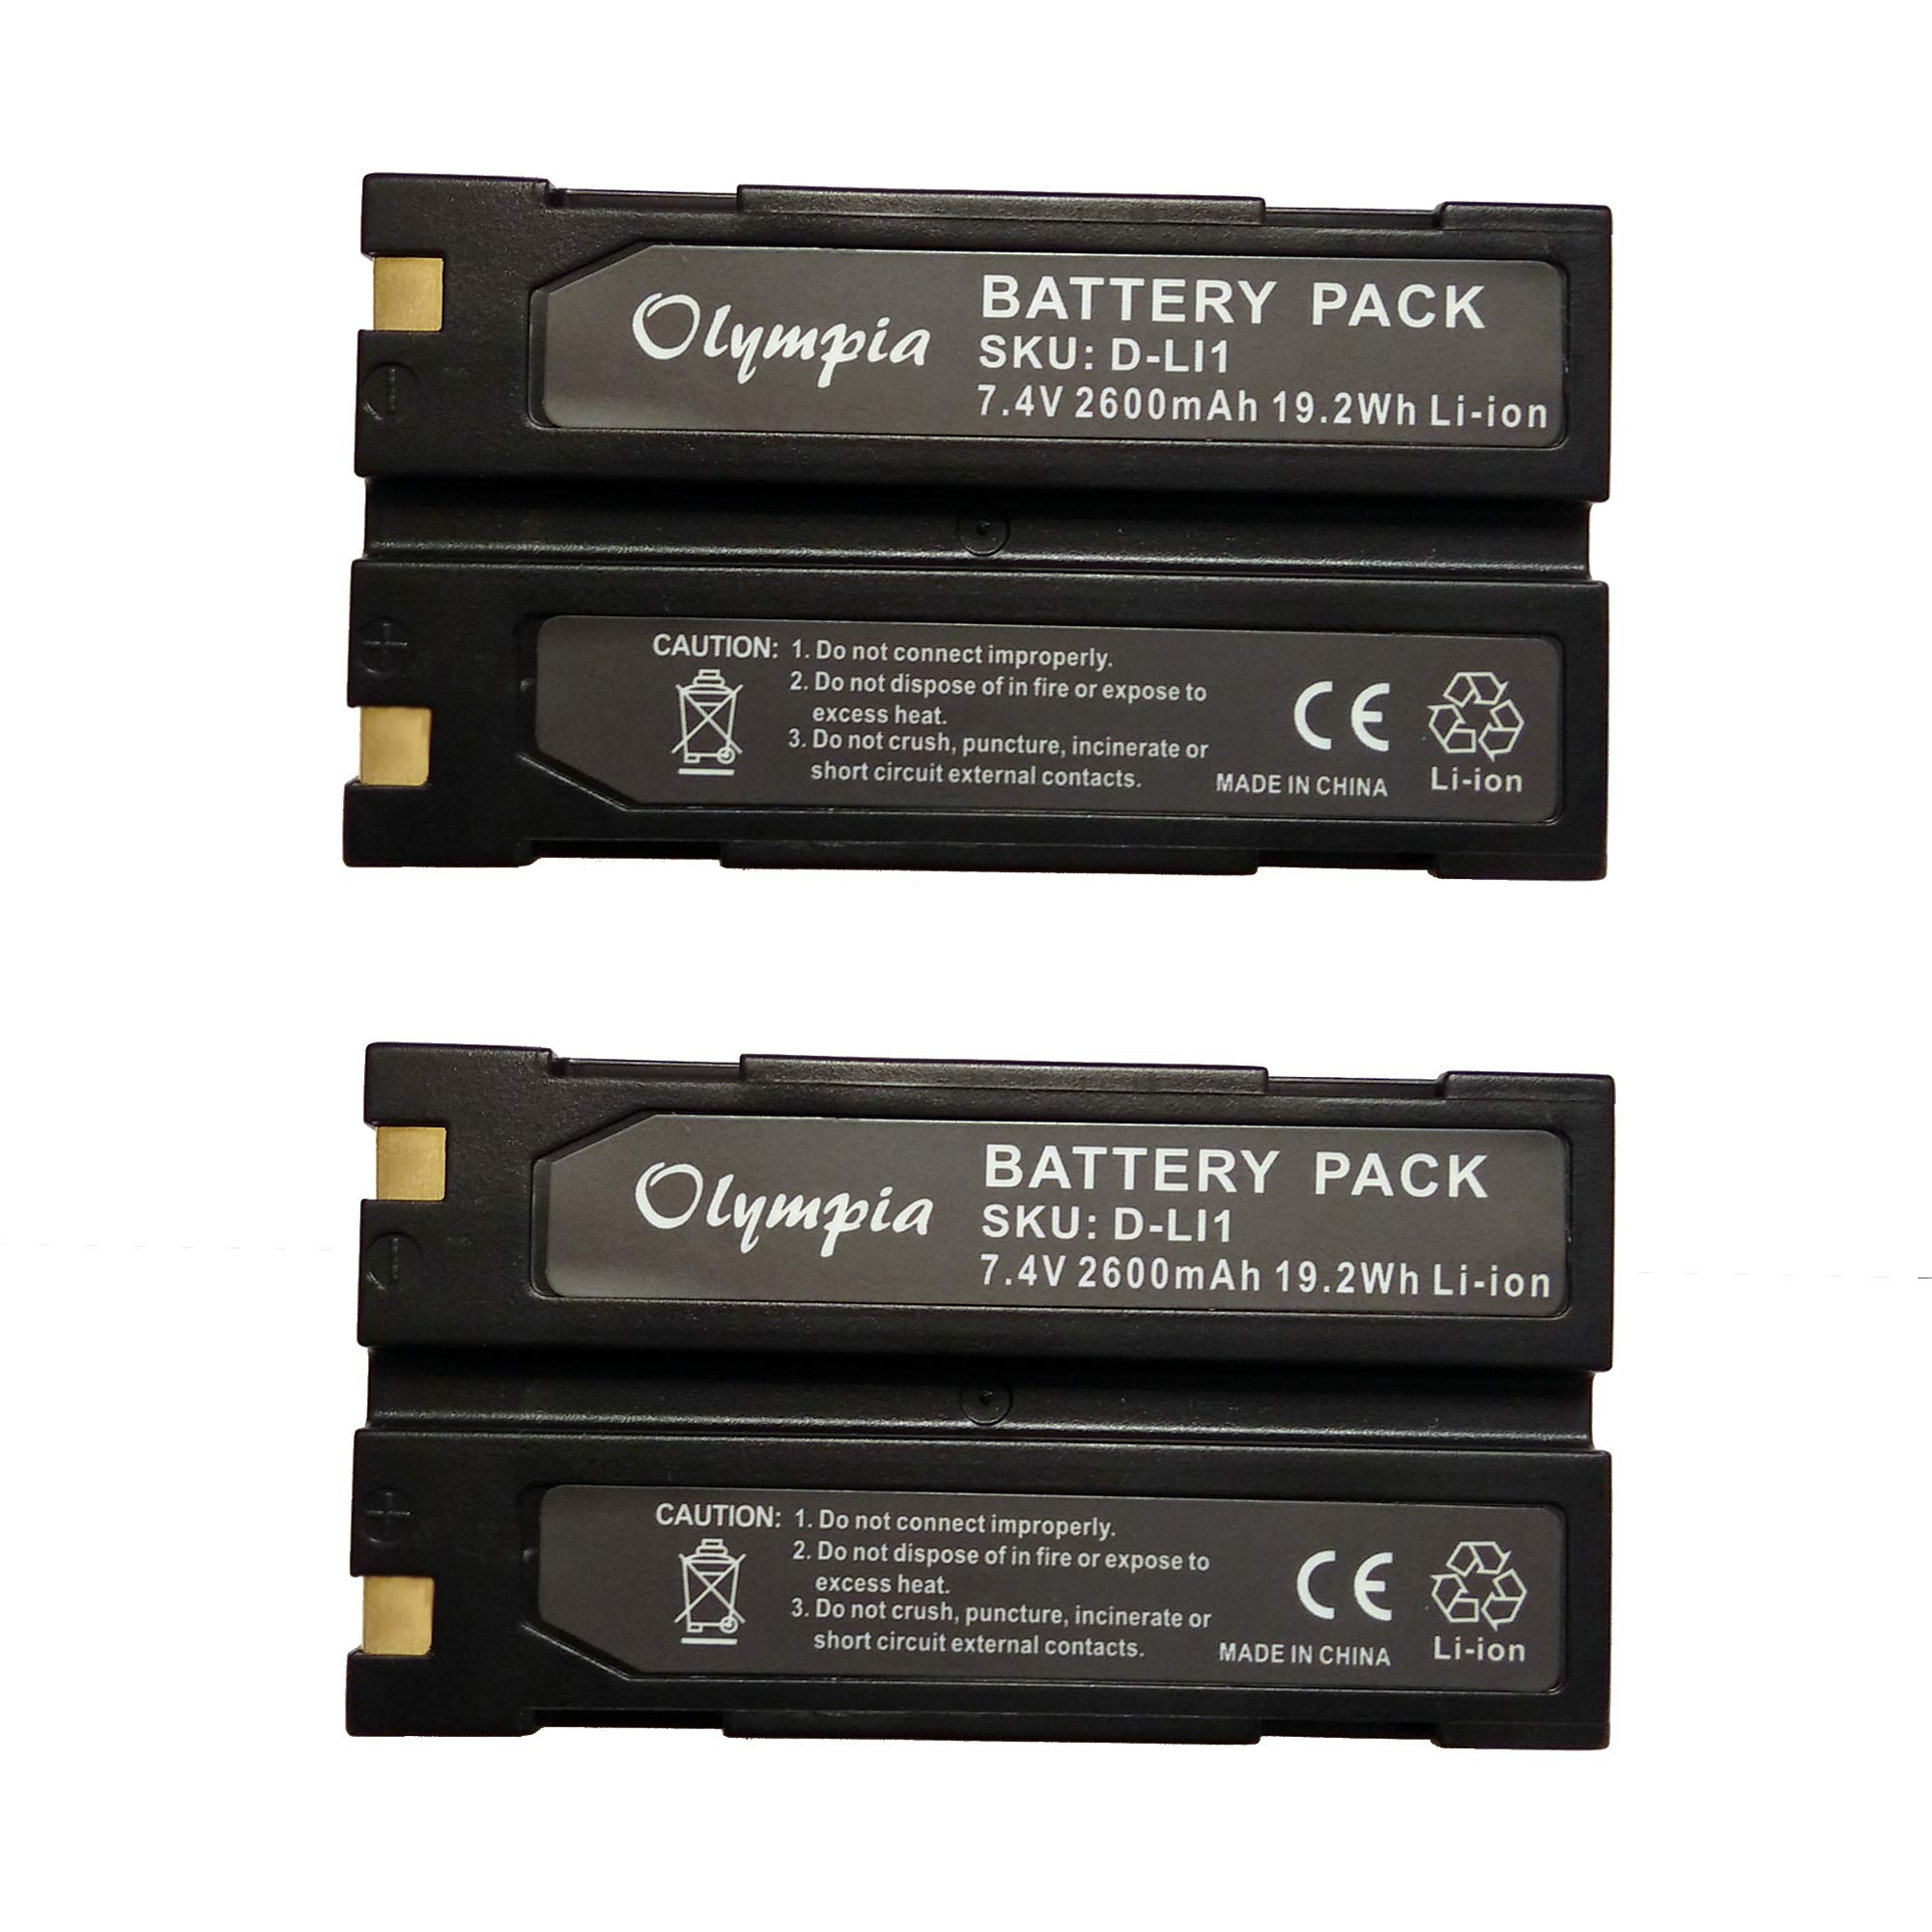 2 Pack of Trimble 54344 Battery - Replacement for Trimble TR-R8 GPS Battery (2600mAh, 7.4V, Li-Ion) by Olympia Battery